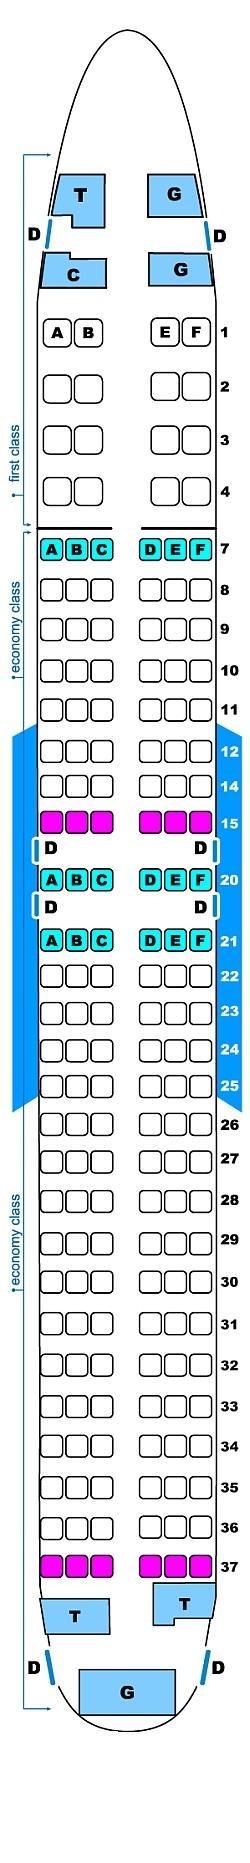 Seat map for Continental Airlines Boeing B737 800 (16/144)